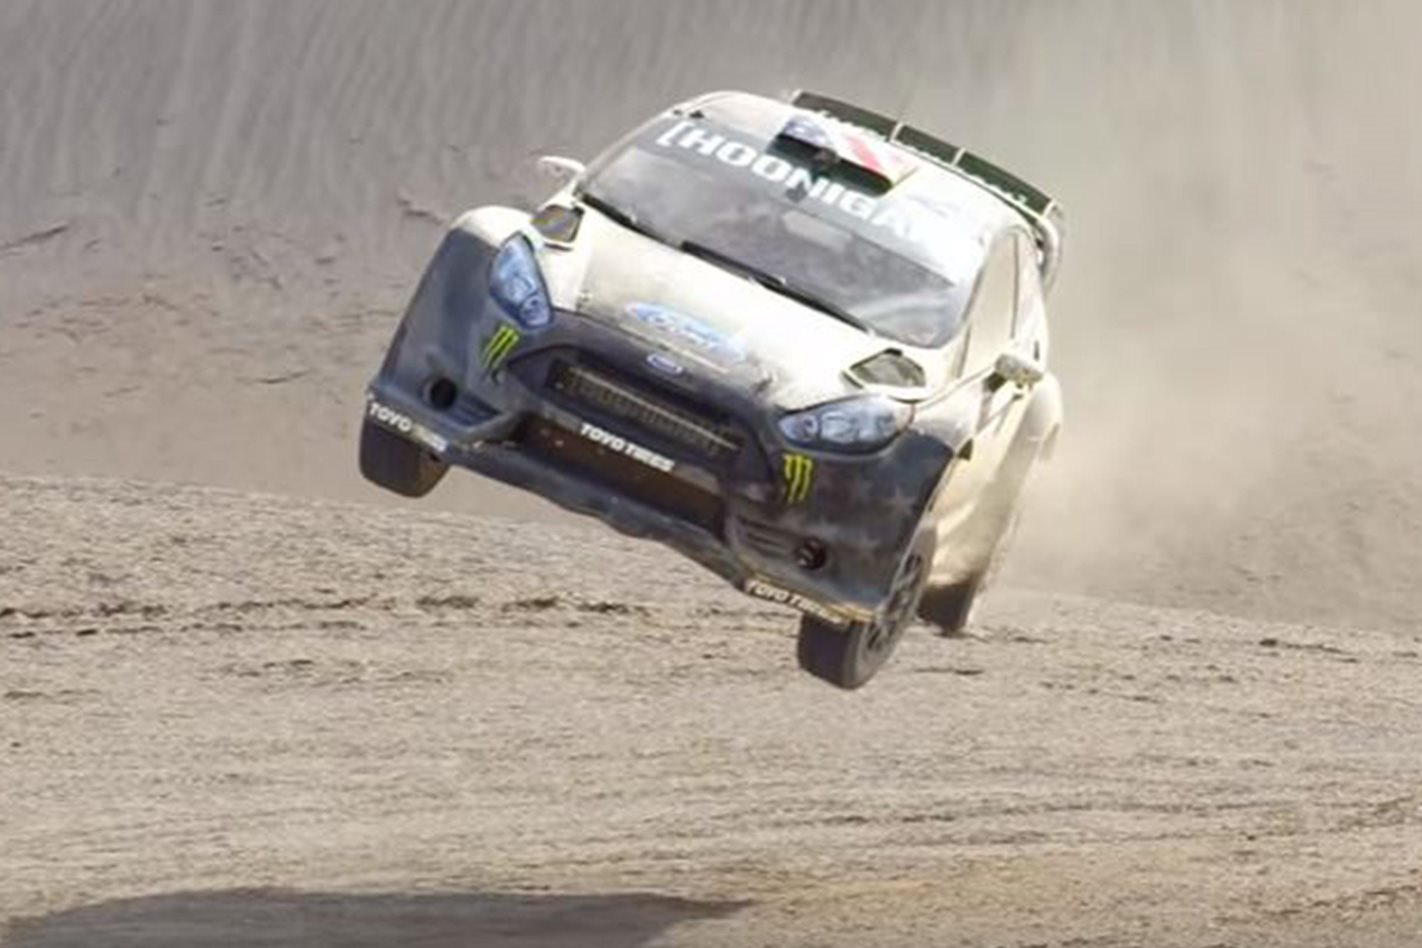 Ford Fiesta ST RX43 rally vehicle